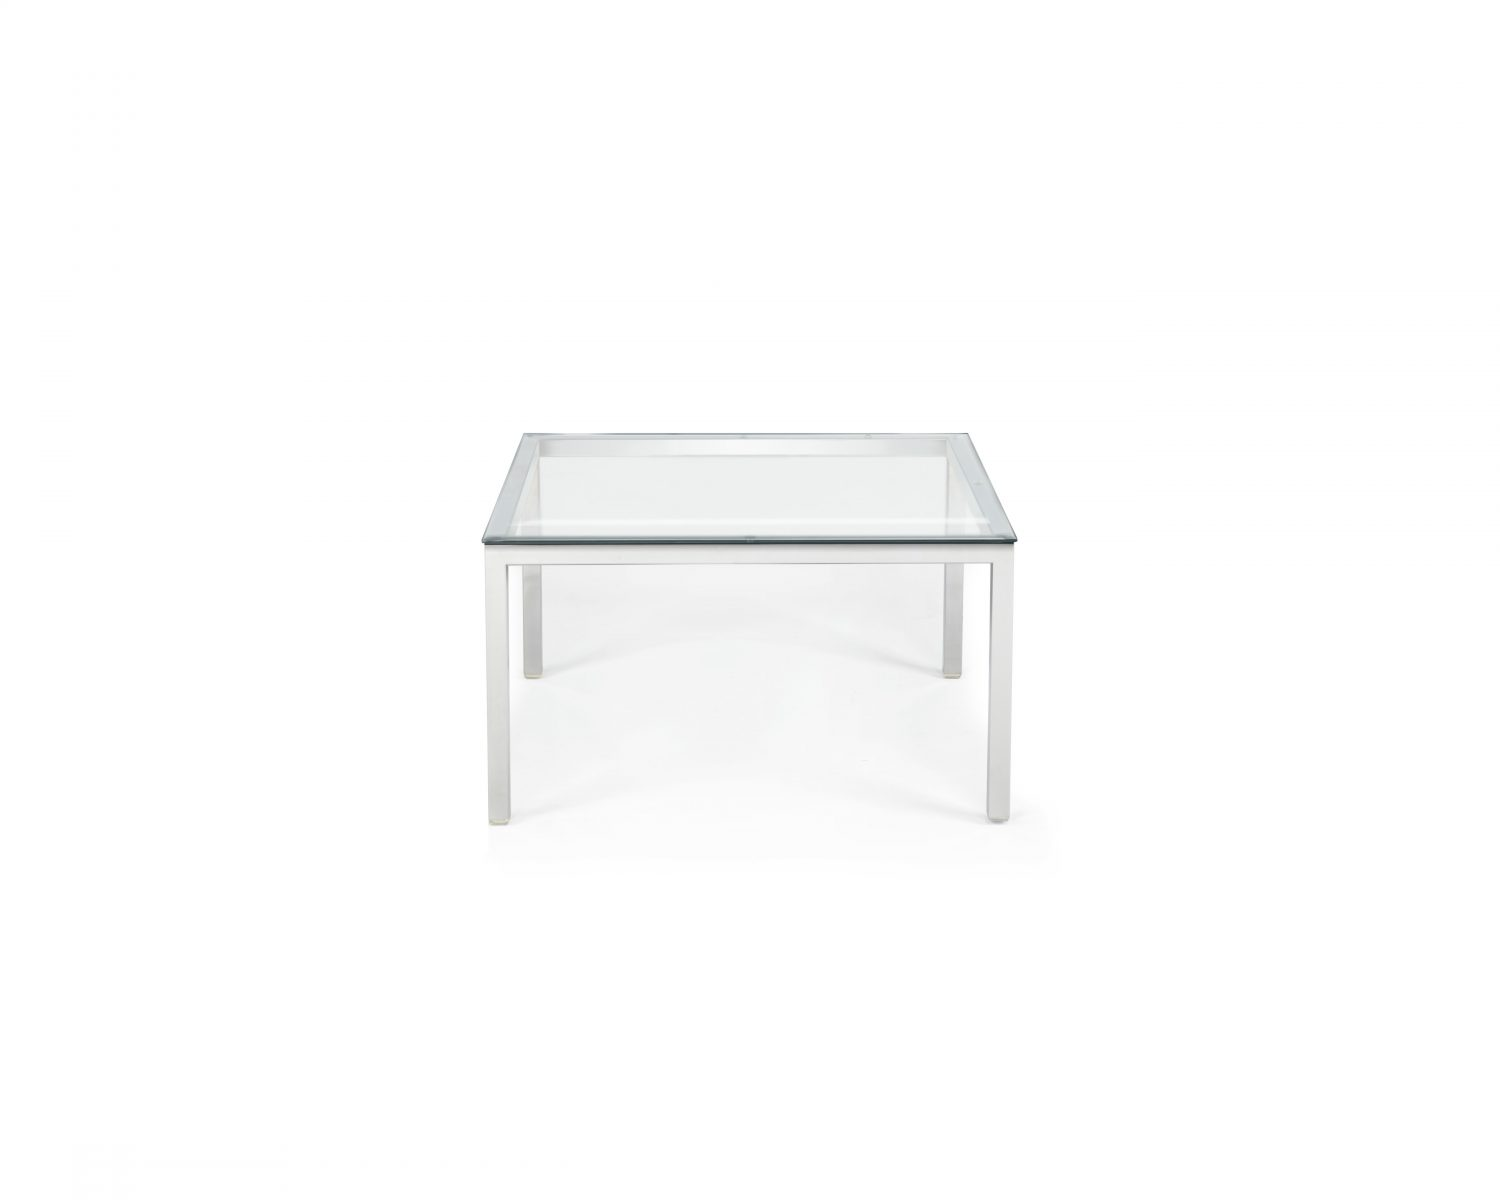 Infinity Glass Table 4